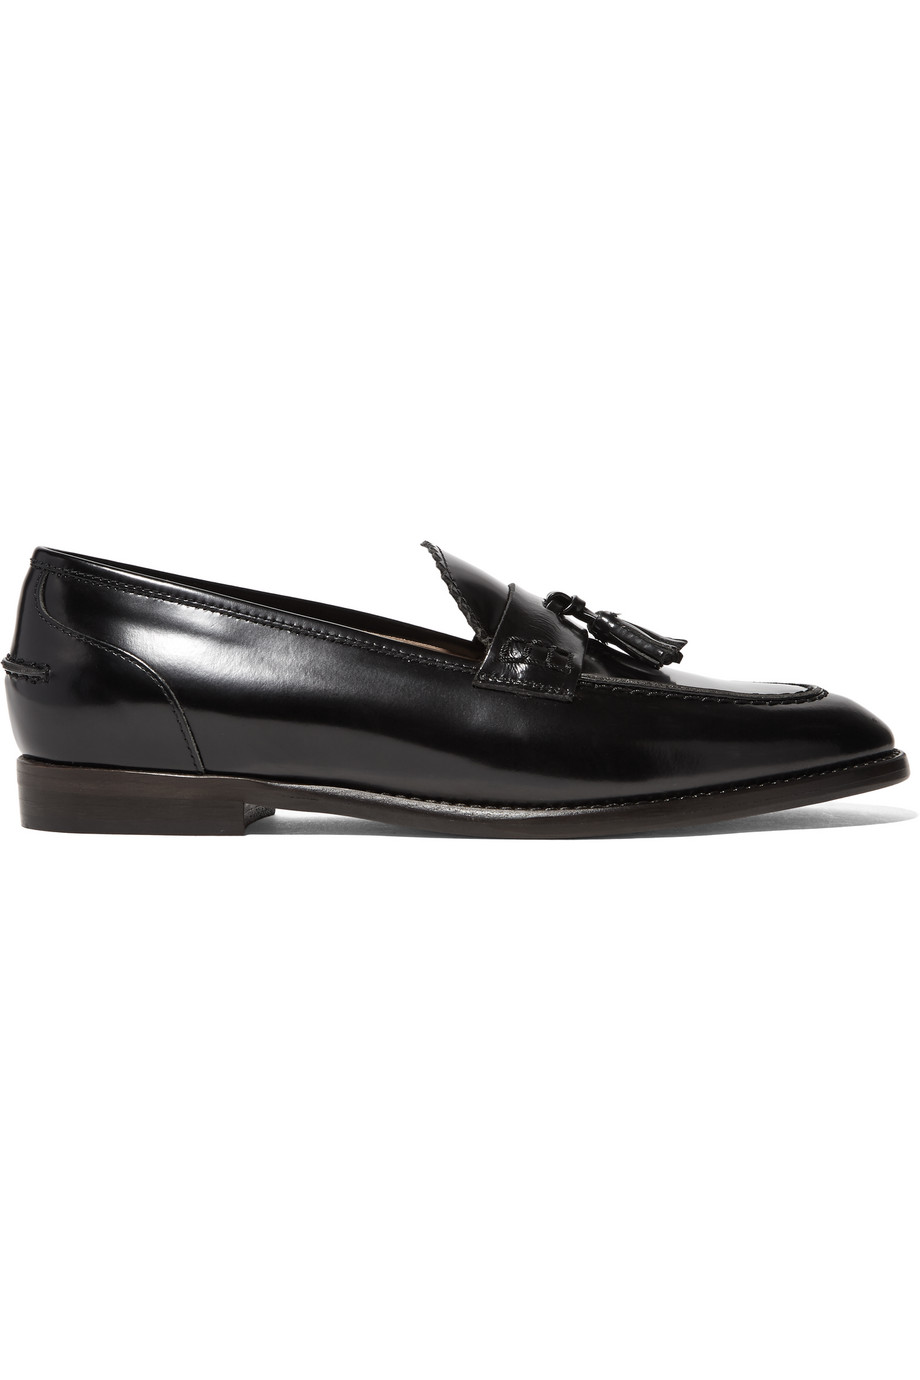 J.Crew Tassel-Embellished Glossed-Leather Loafers, Black, Women's, Size: 5